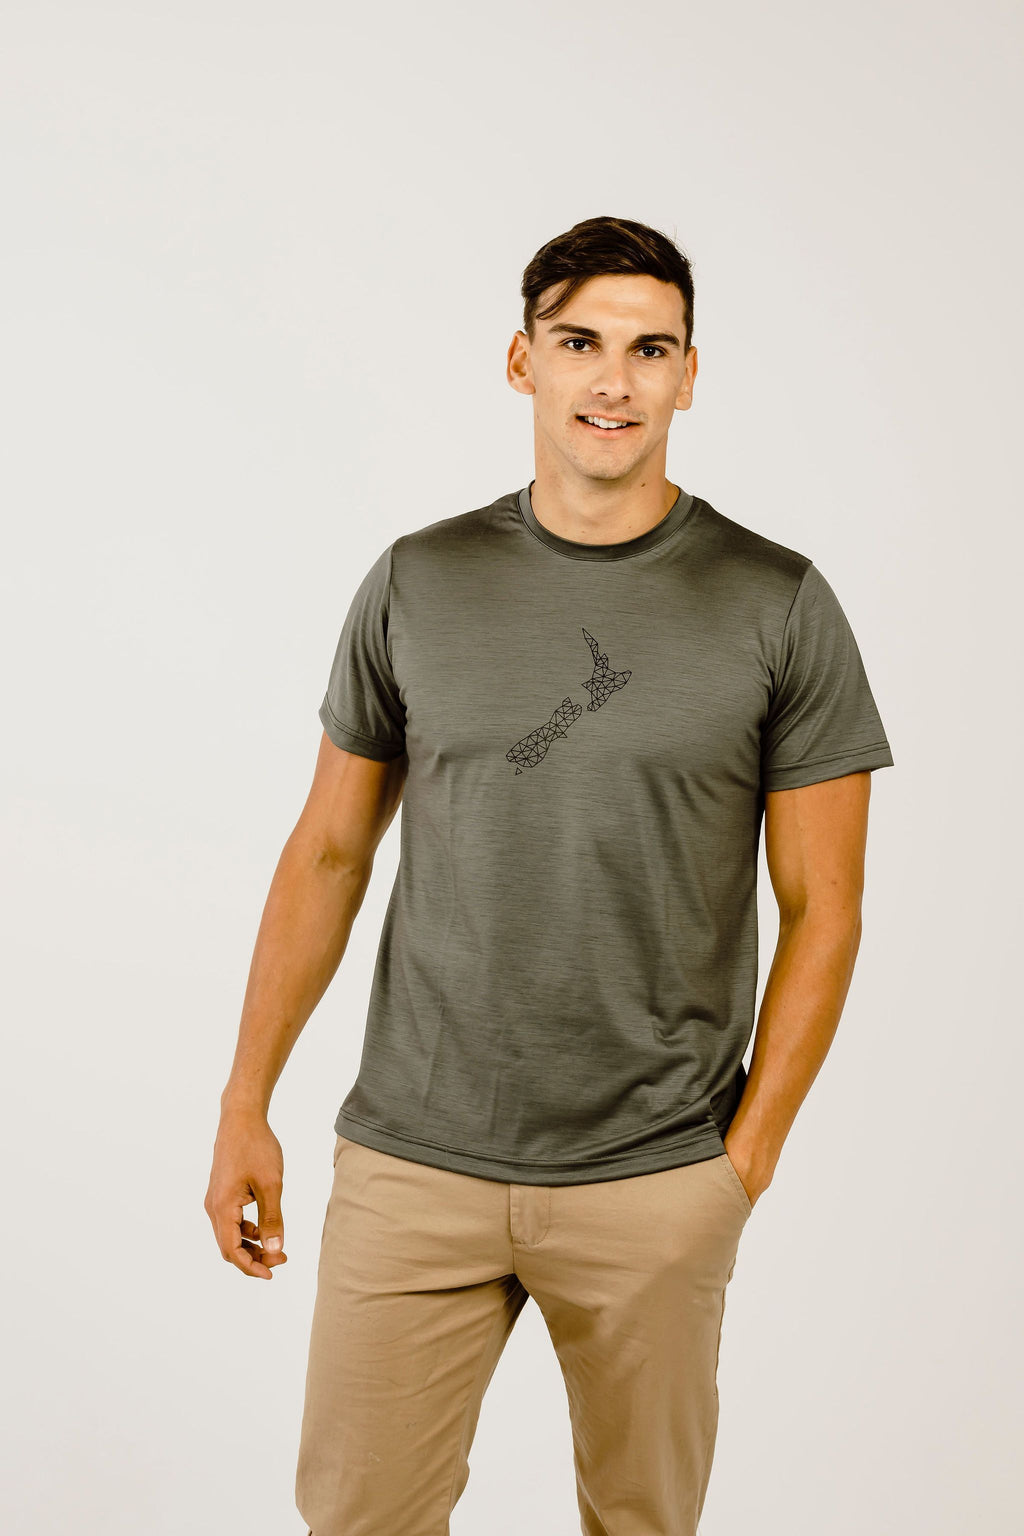 Merino NZ Short Sleeve T-Shirt - Kapeka NZ